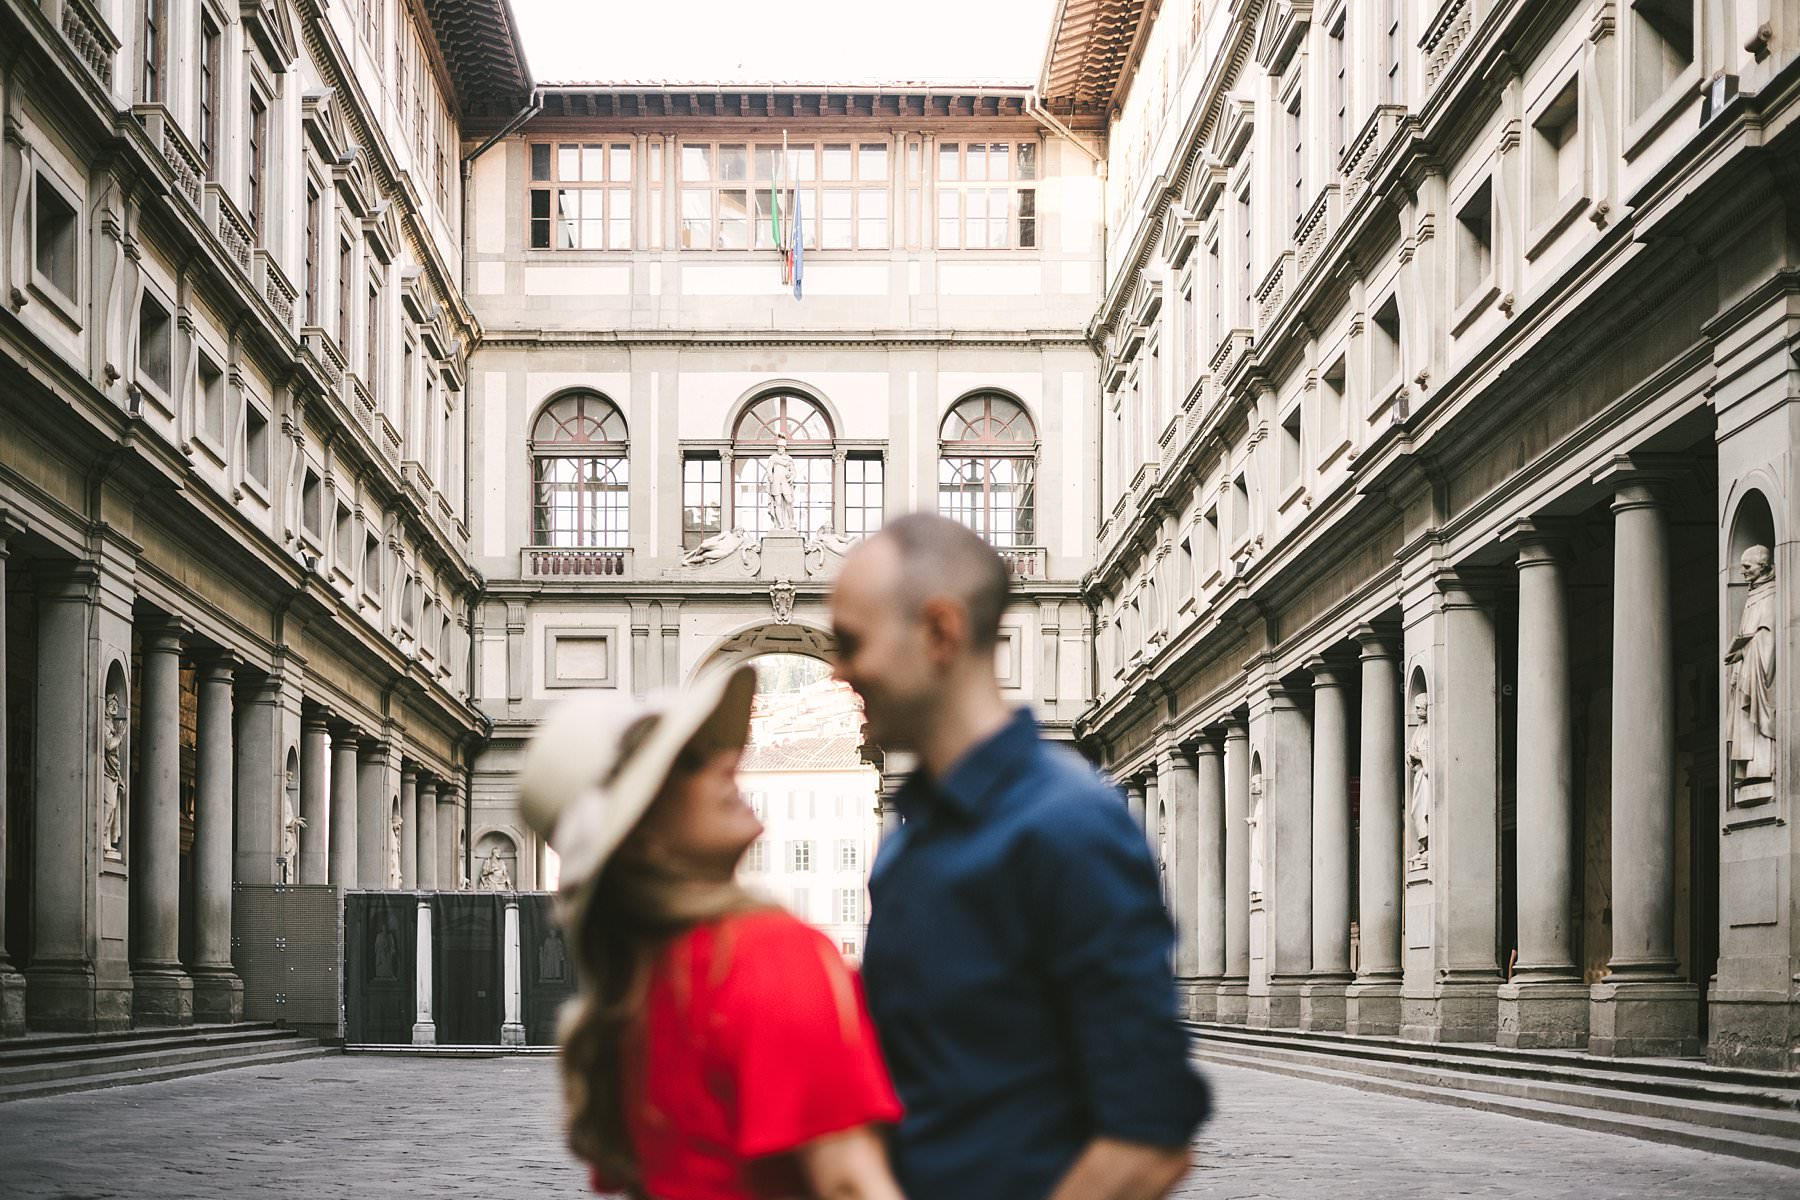 Anisa and Kevin's delightful anniversary photo at Uffizi Art Gallery in Florence. Anisa and Kevin are in love with one another but also with the architecture of the city, so their wish was for it to be part of the photographs. Since it is such a popular touristic destination, though, there was only one way to do that properly: a sunrise photoshoot